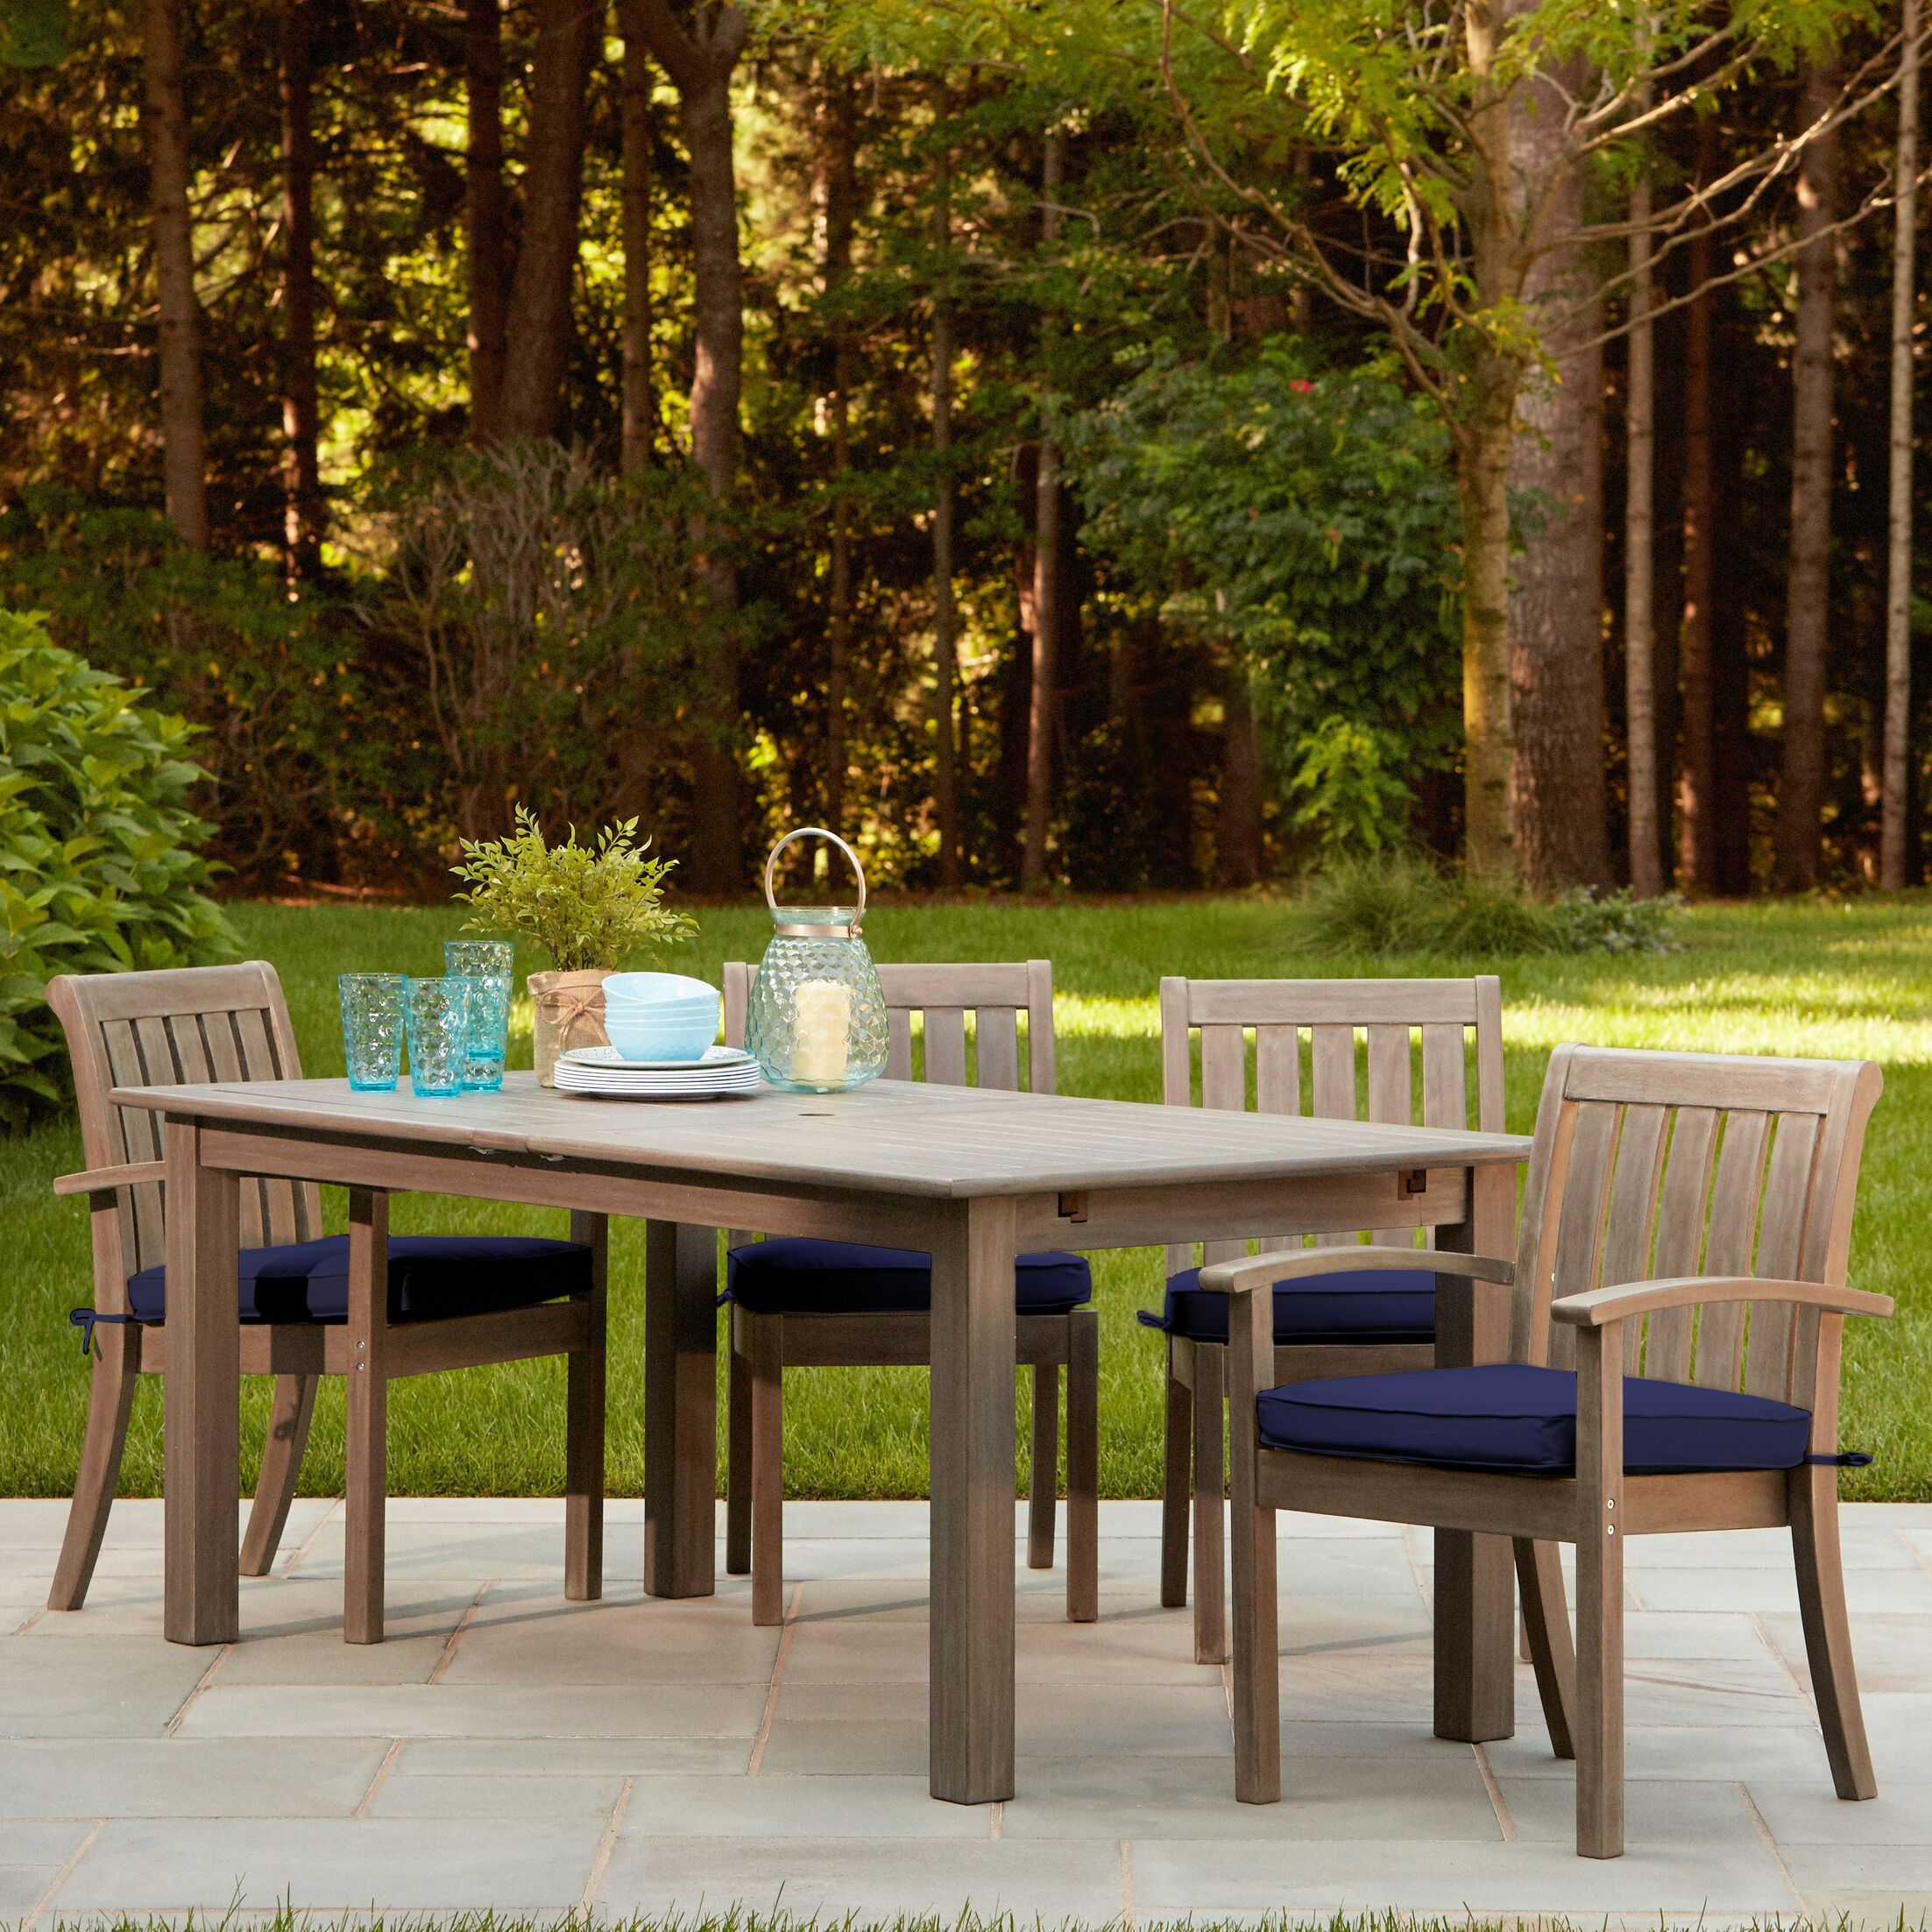 Rossi 7-Piece Dining Set with Cushions Cushion Color: Navy